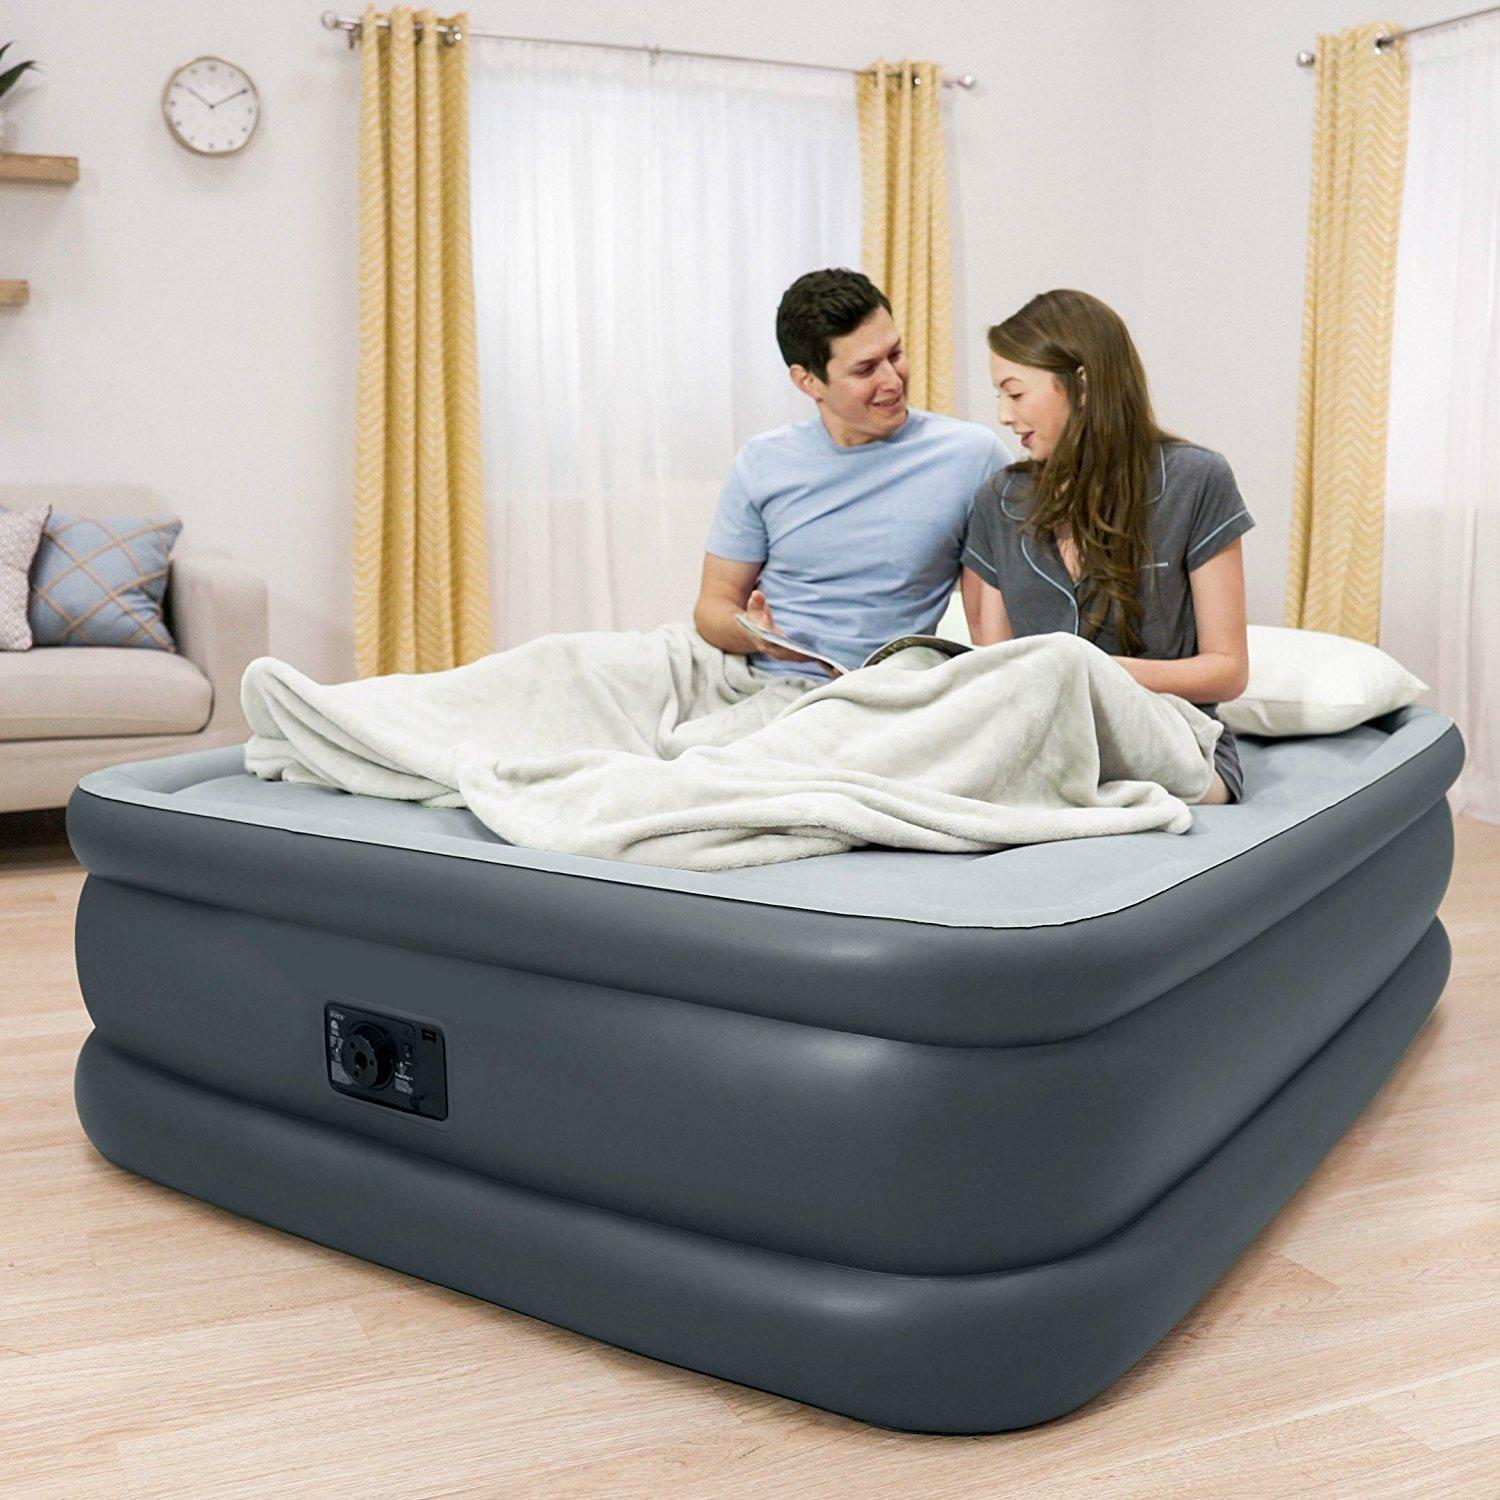 Colchones Inflables Queen Size Mediano Autoinflable